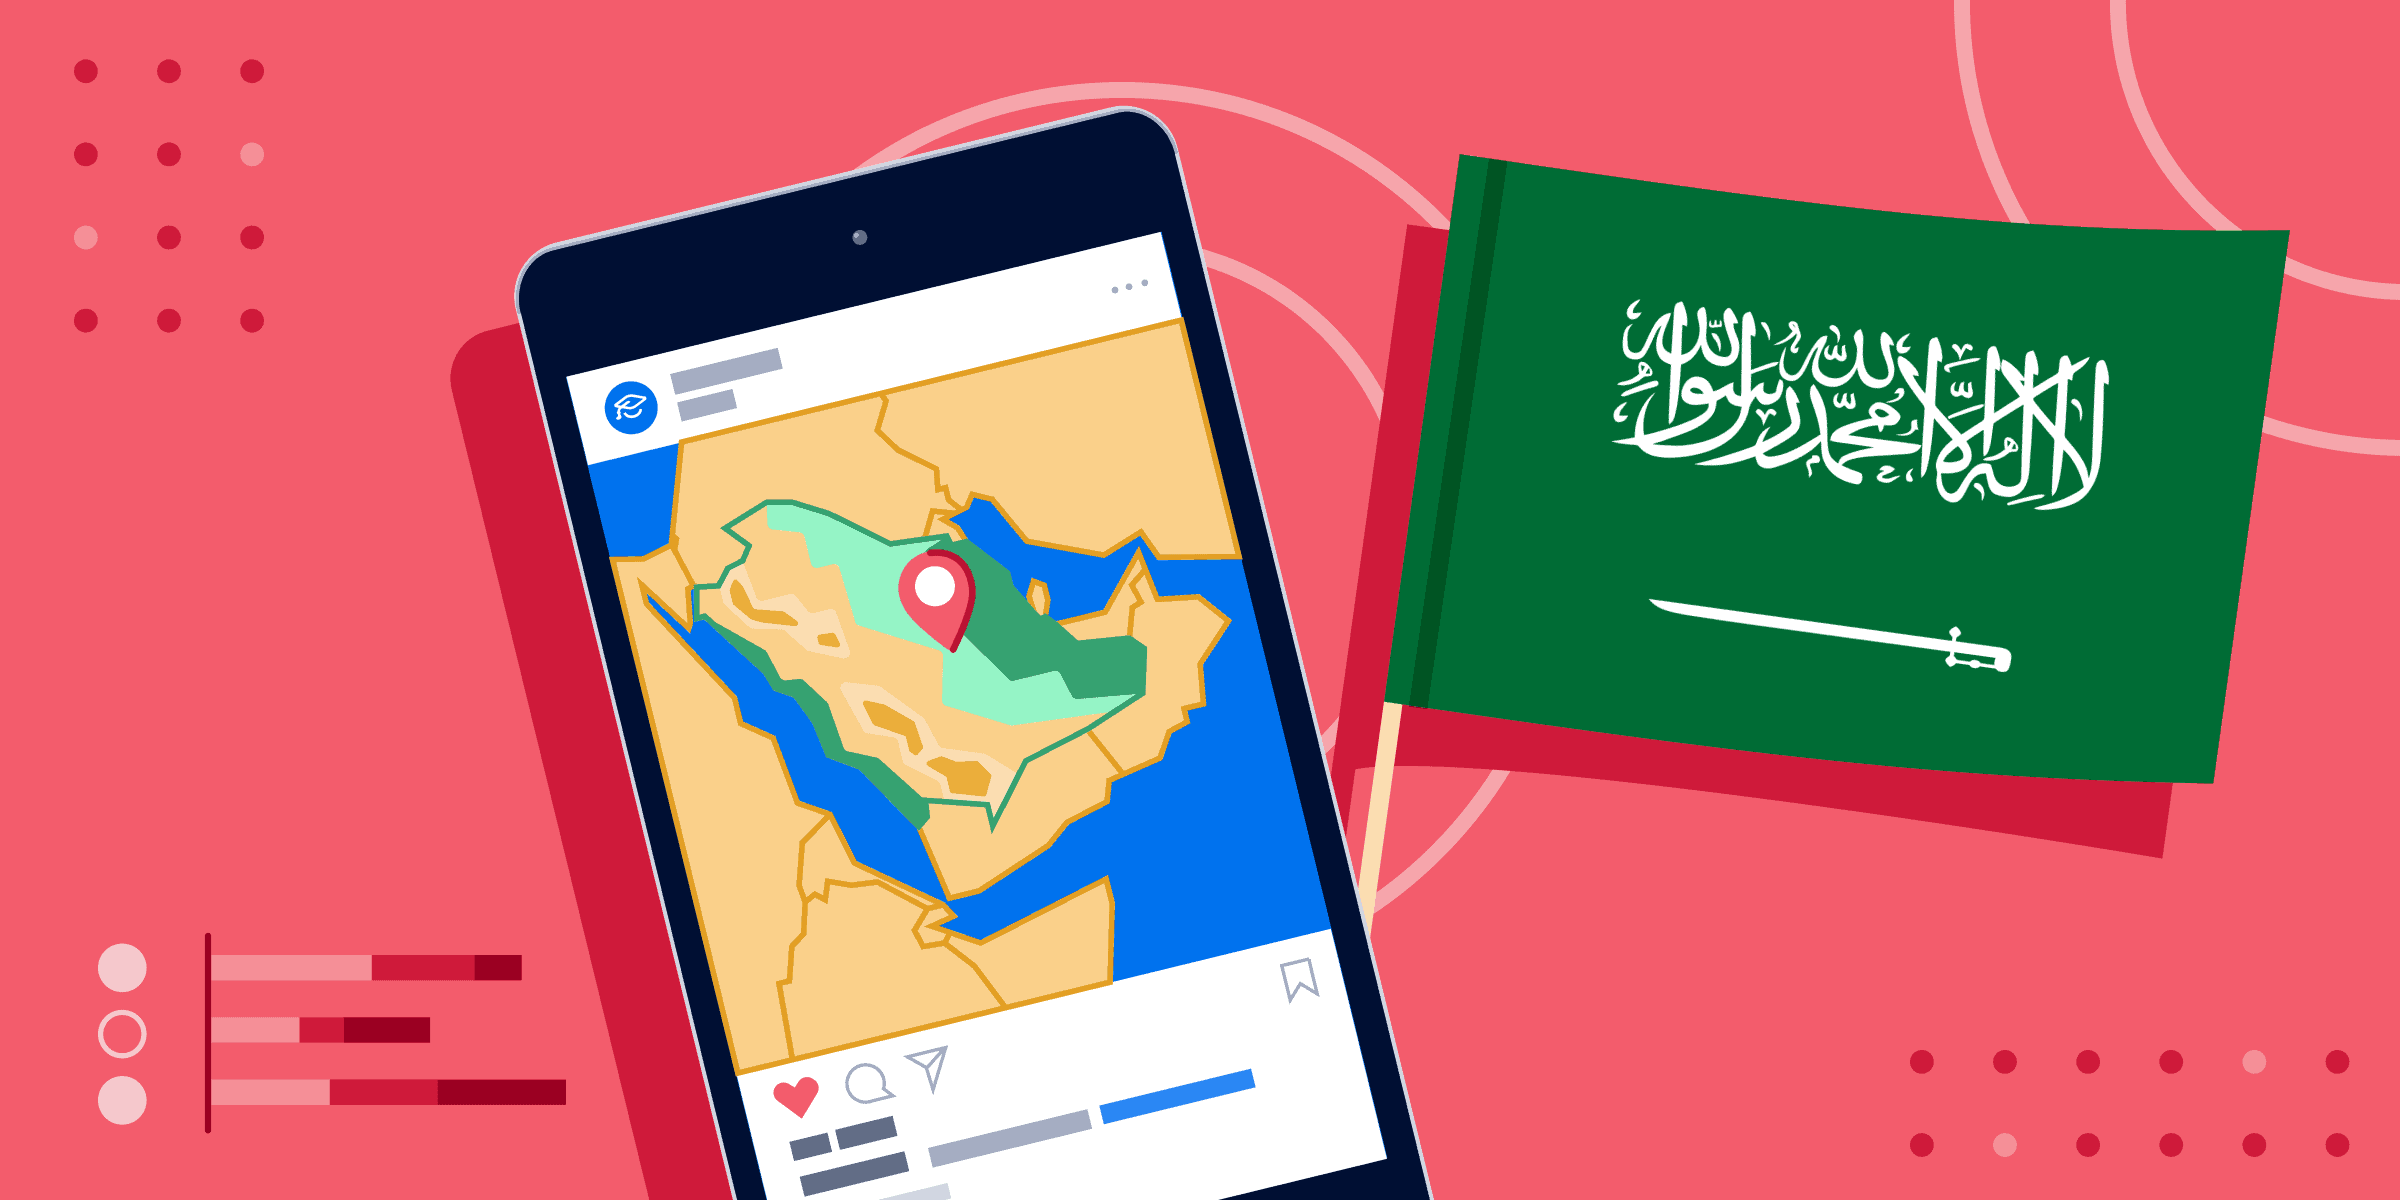 ApplyInsights: Saudi Arabia Offers Growing International Student Recruitment Potential banner featuring map of Saudi Arabia on a smartphone next to Saudi flag